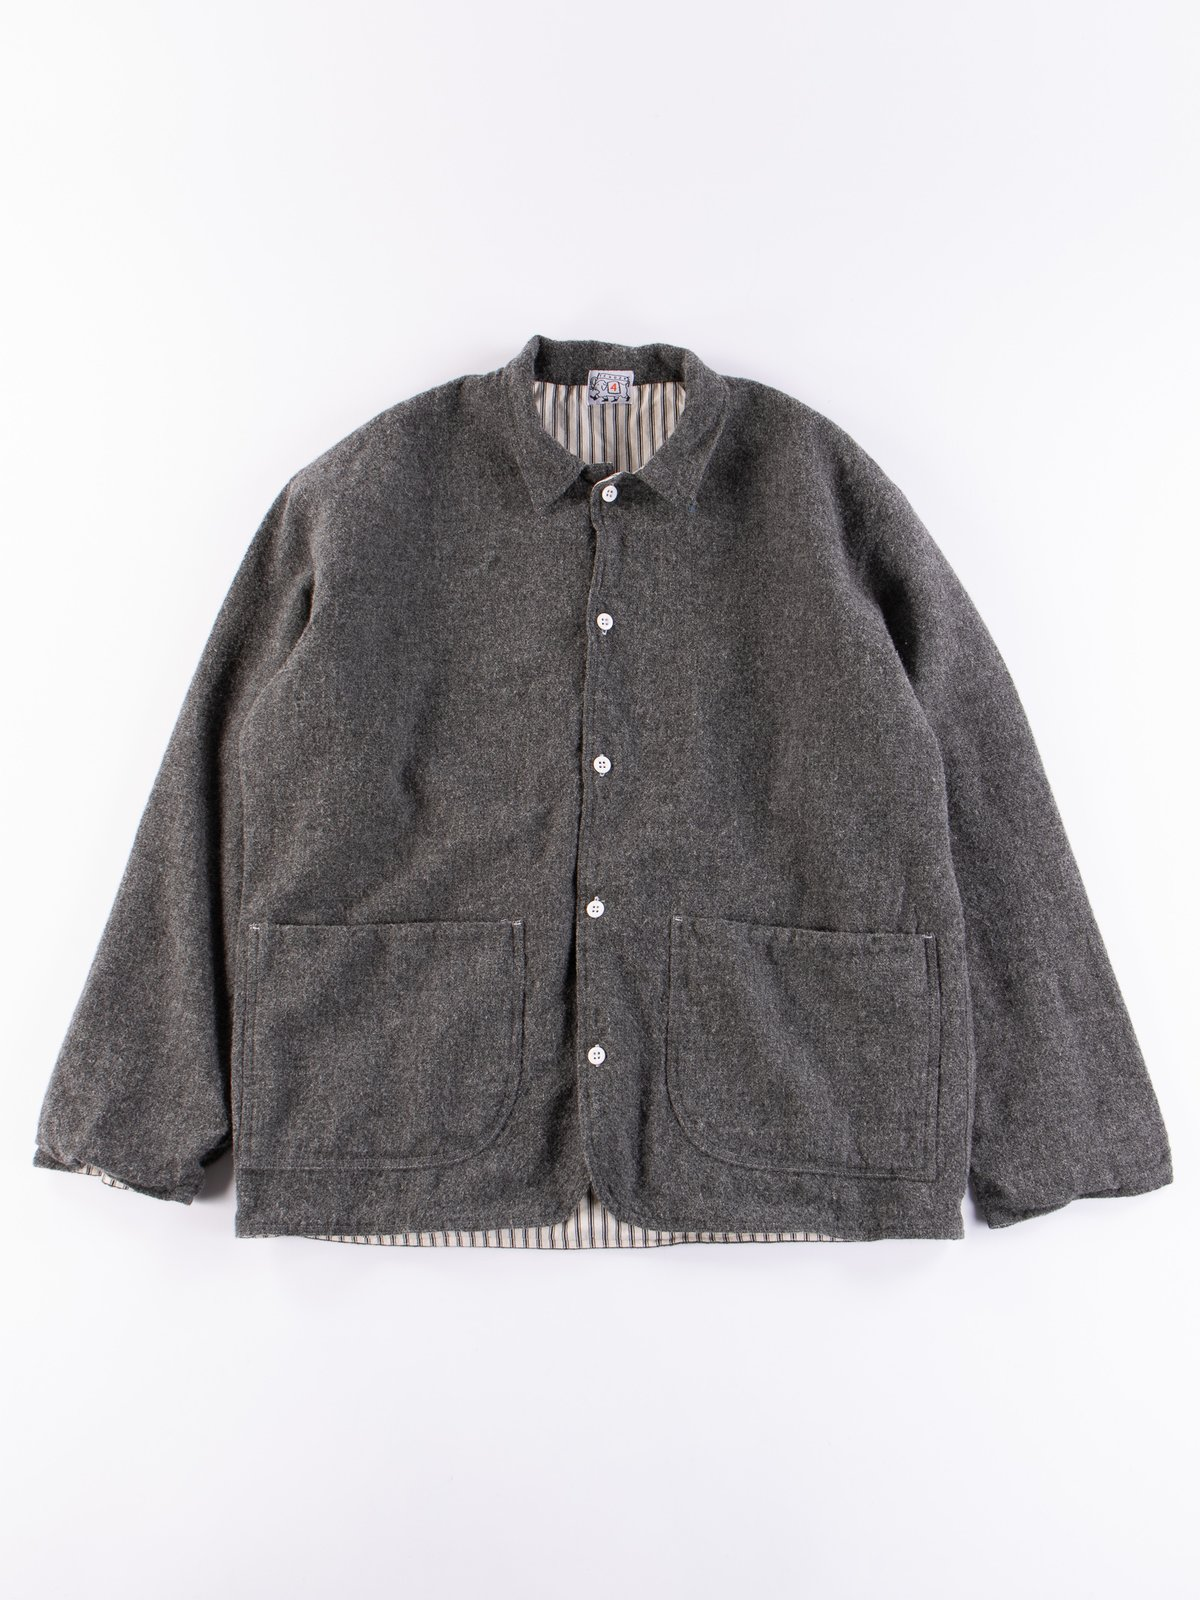 Charcoal Weavers Stock Curve Front Jacket - Image 1